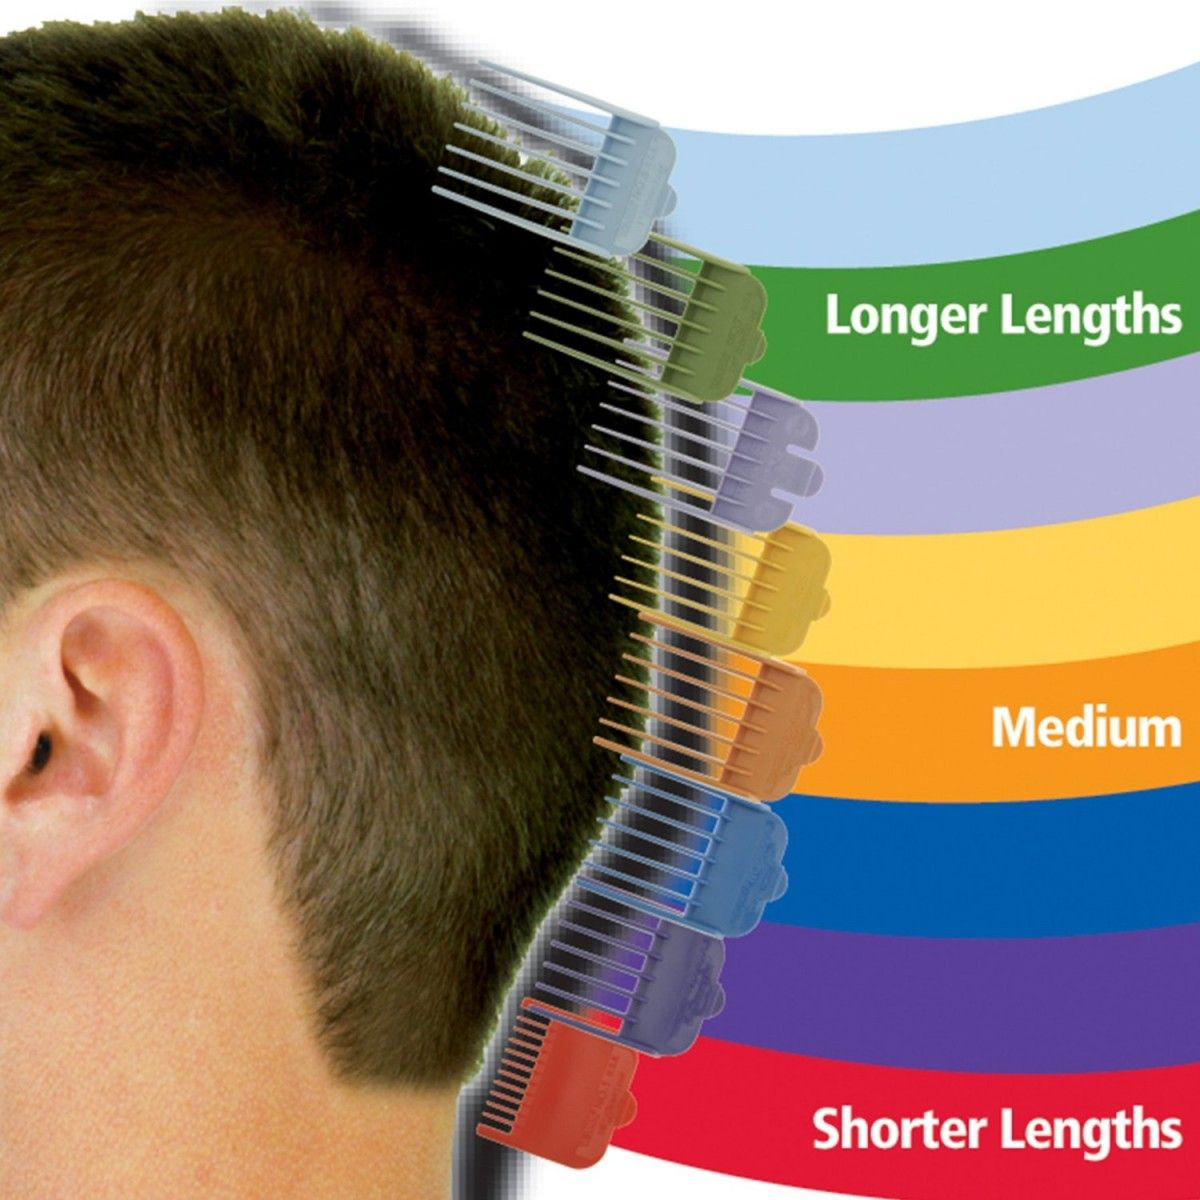 The Guide to Hair Clipper Sizes in 2019